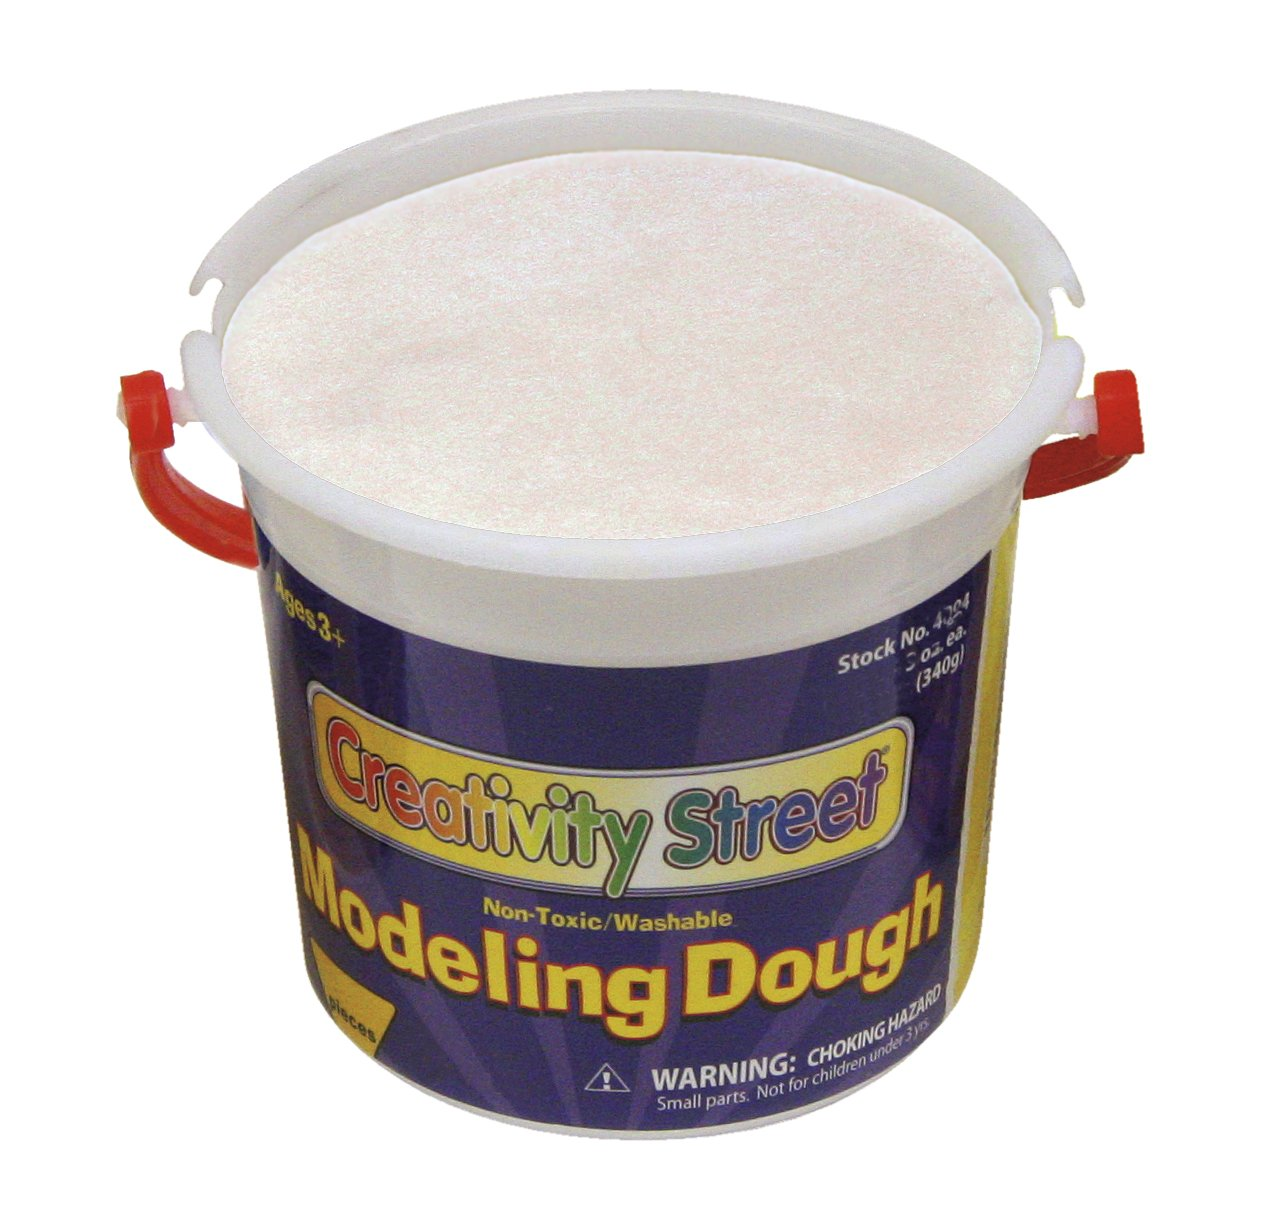 Chenille Kraft White Modeling Dough, 3.3 Pound. The Chenille Kraft Company 4069